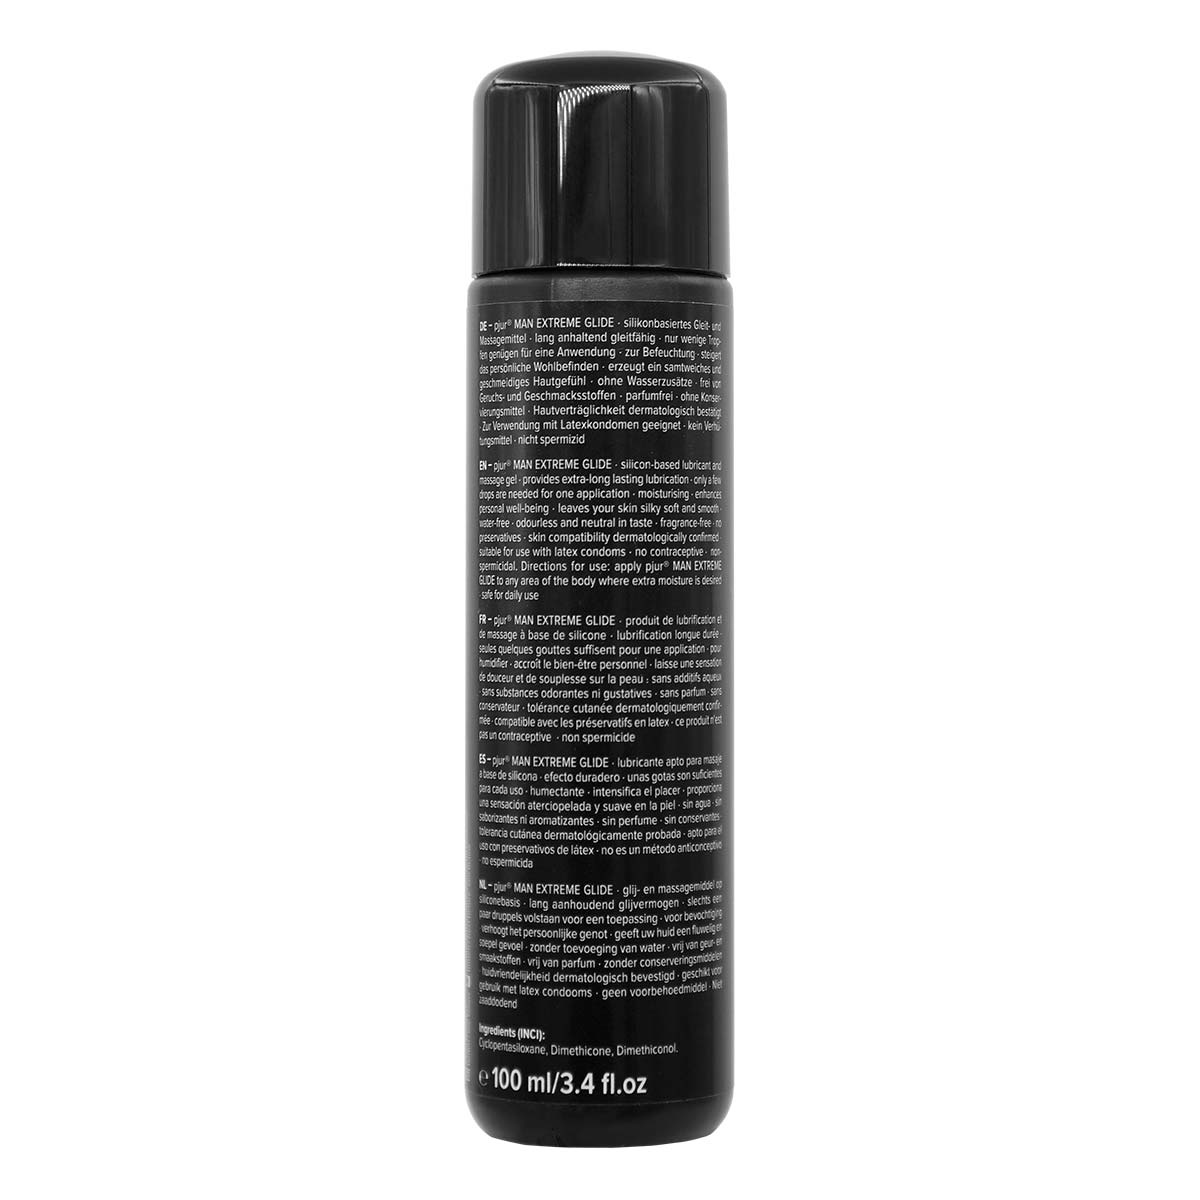 pjur MAN Extreme Glide 100ml Silicone-based Lubricant